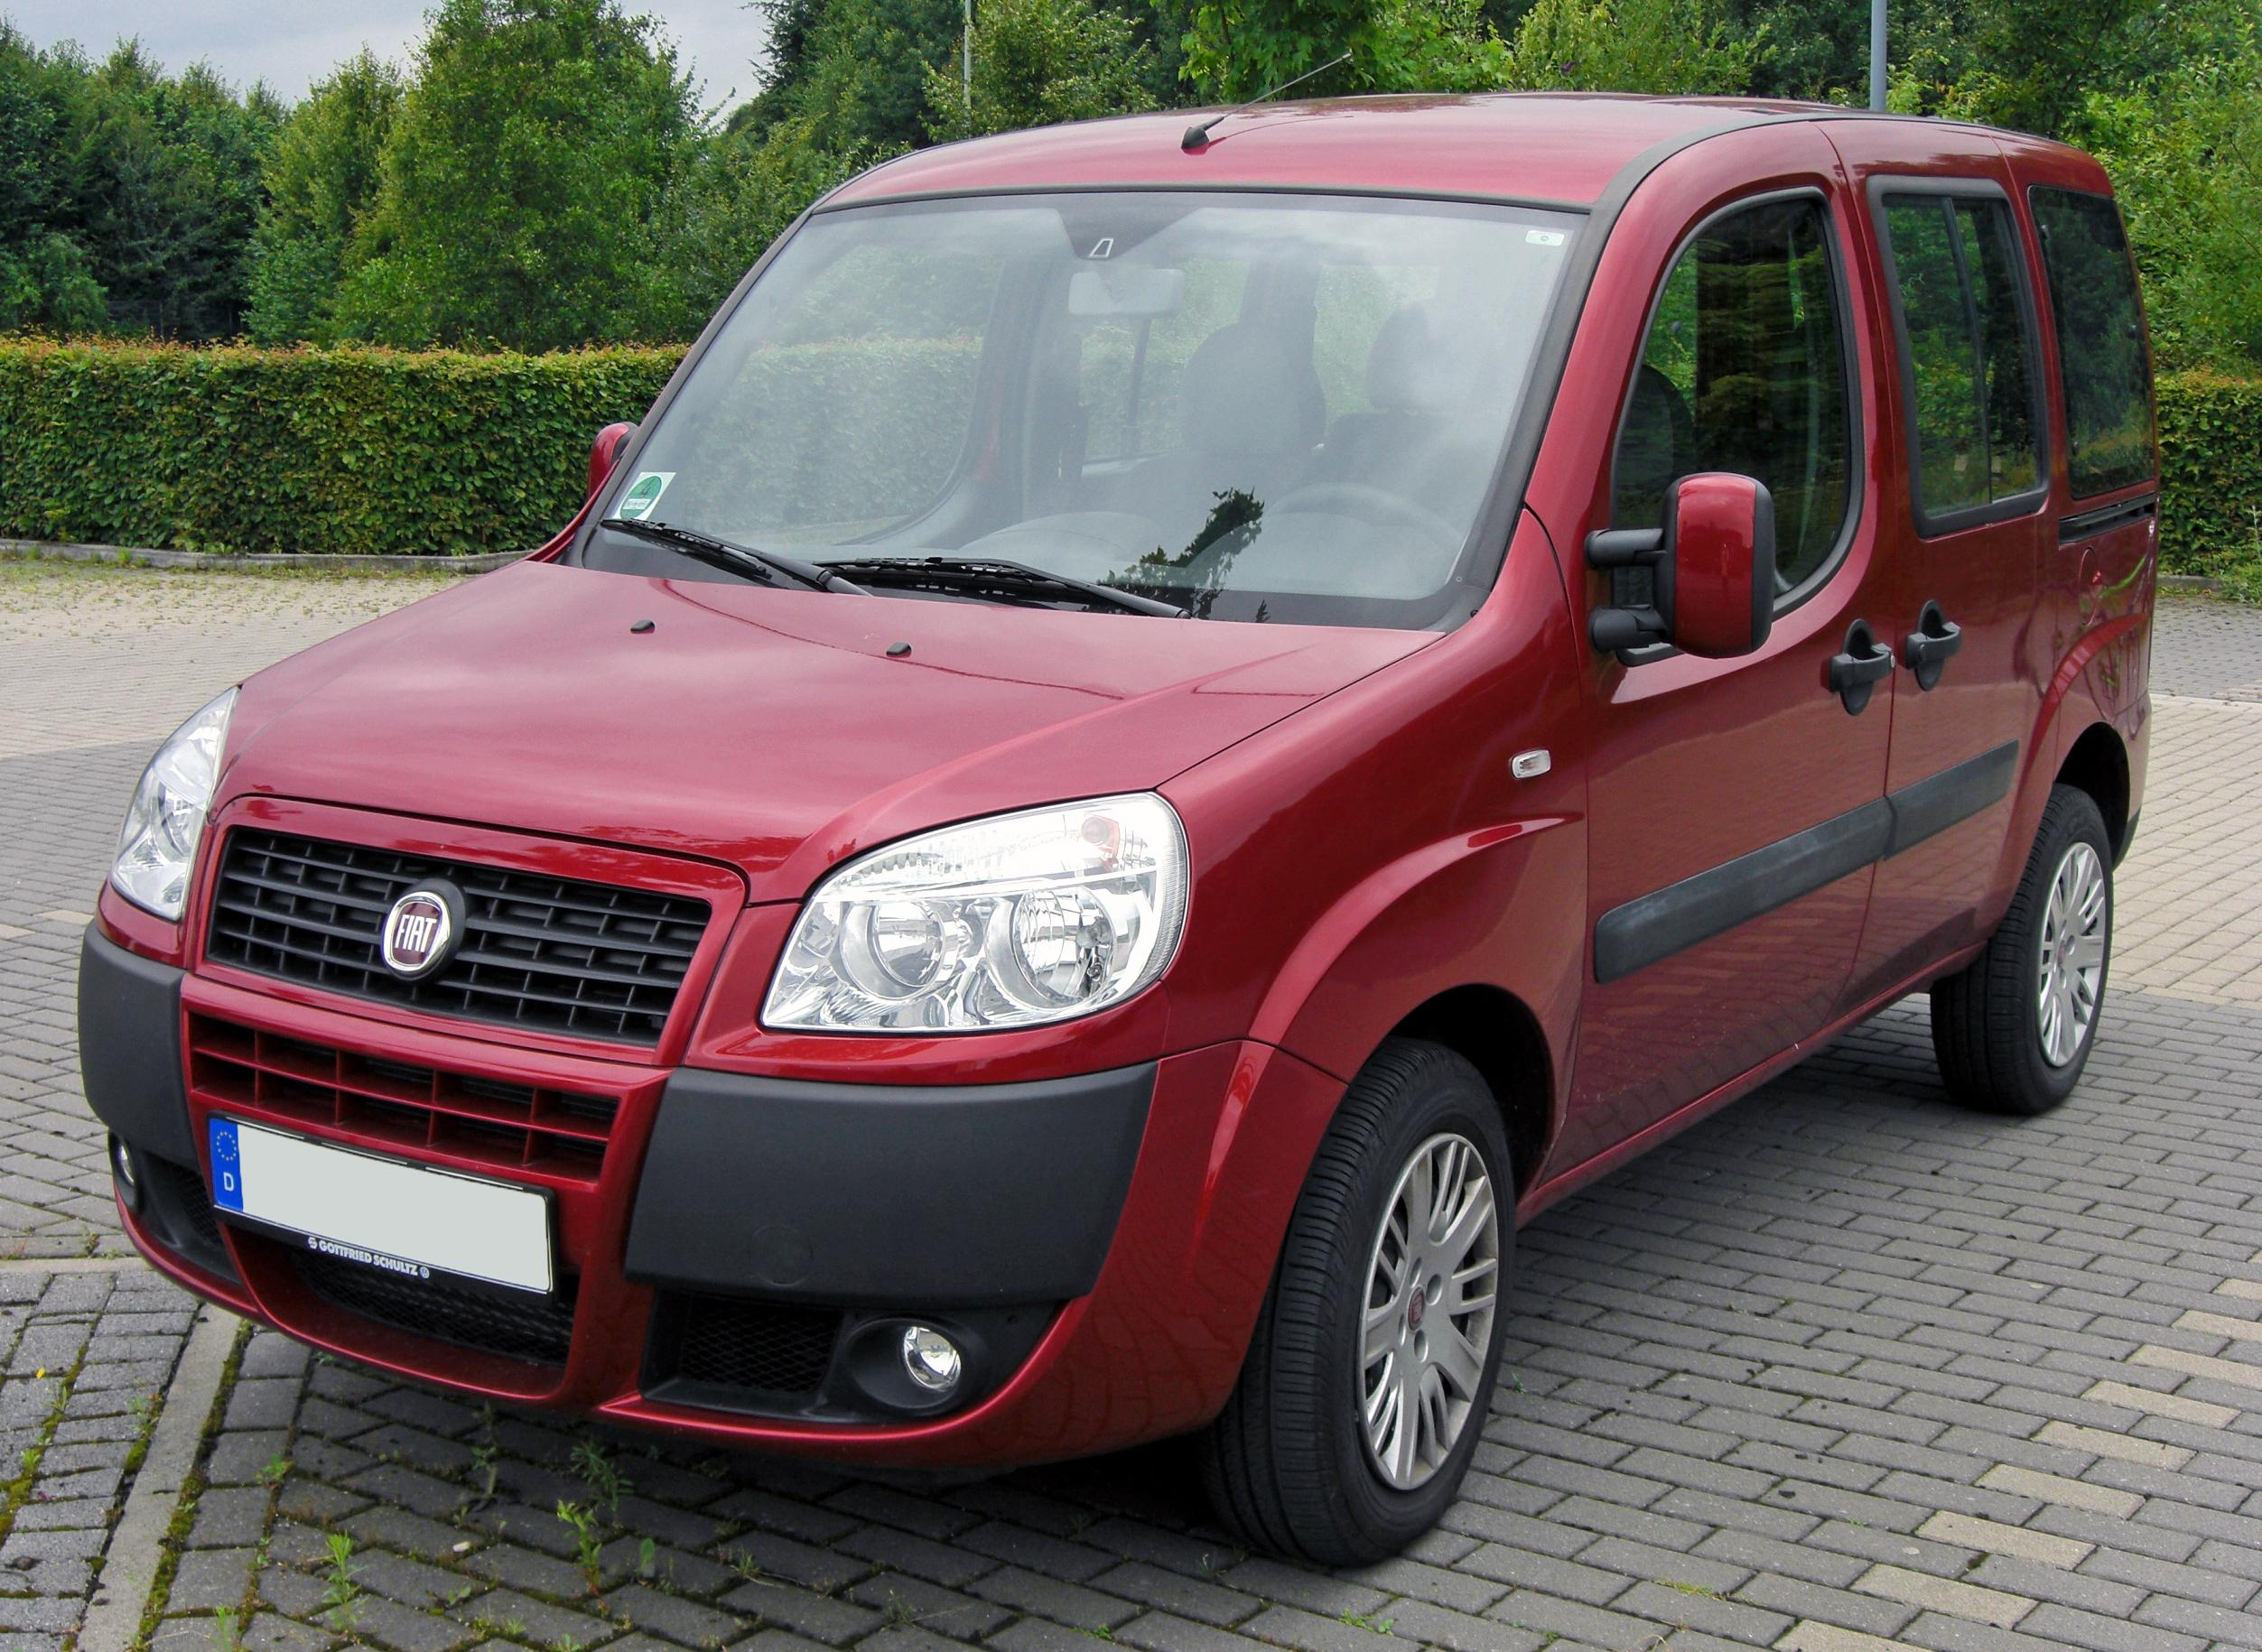 file fiat doblo facelift 20090712 front jpg wikimedia commons. Black Bedroom Furniture Sets. Home Design Ideas